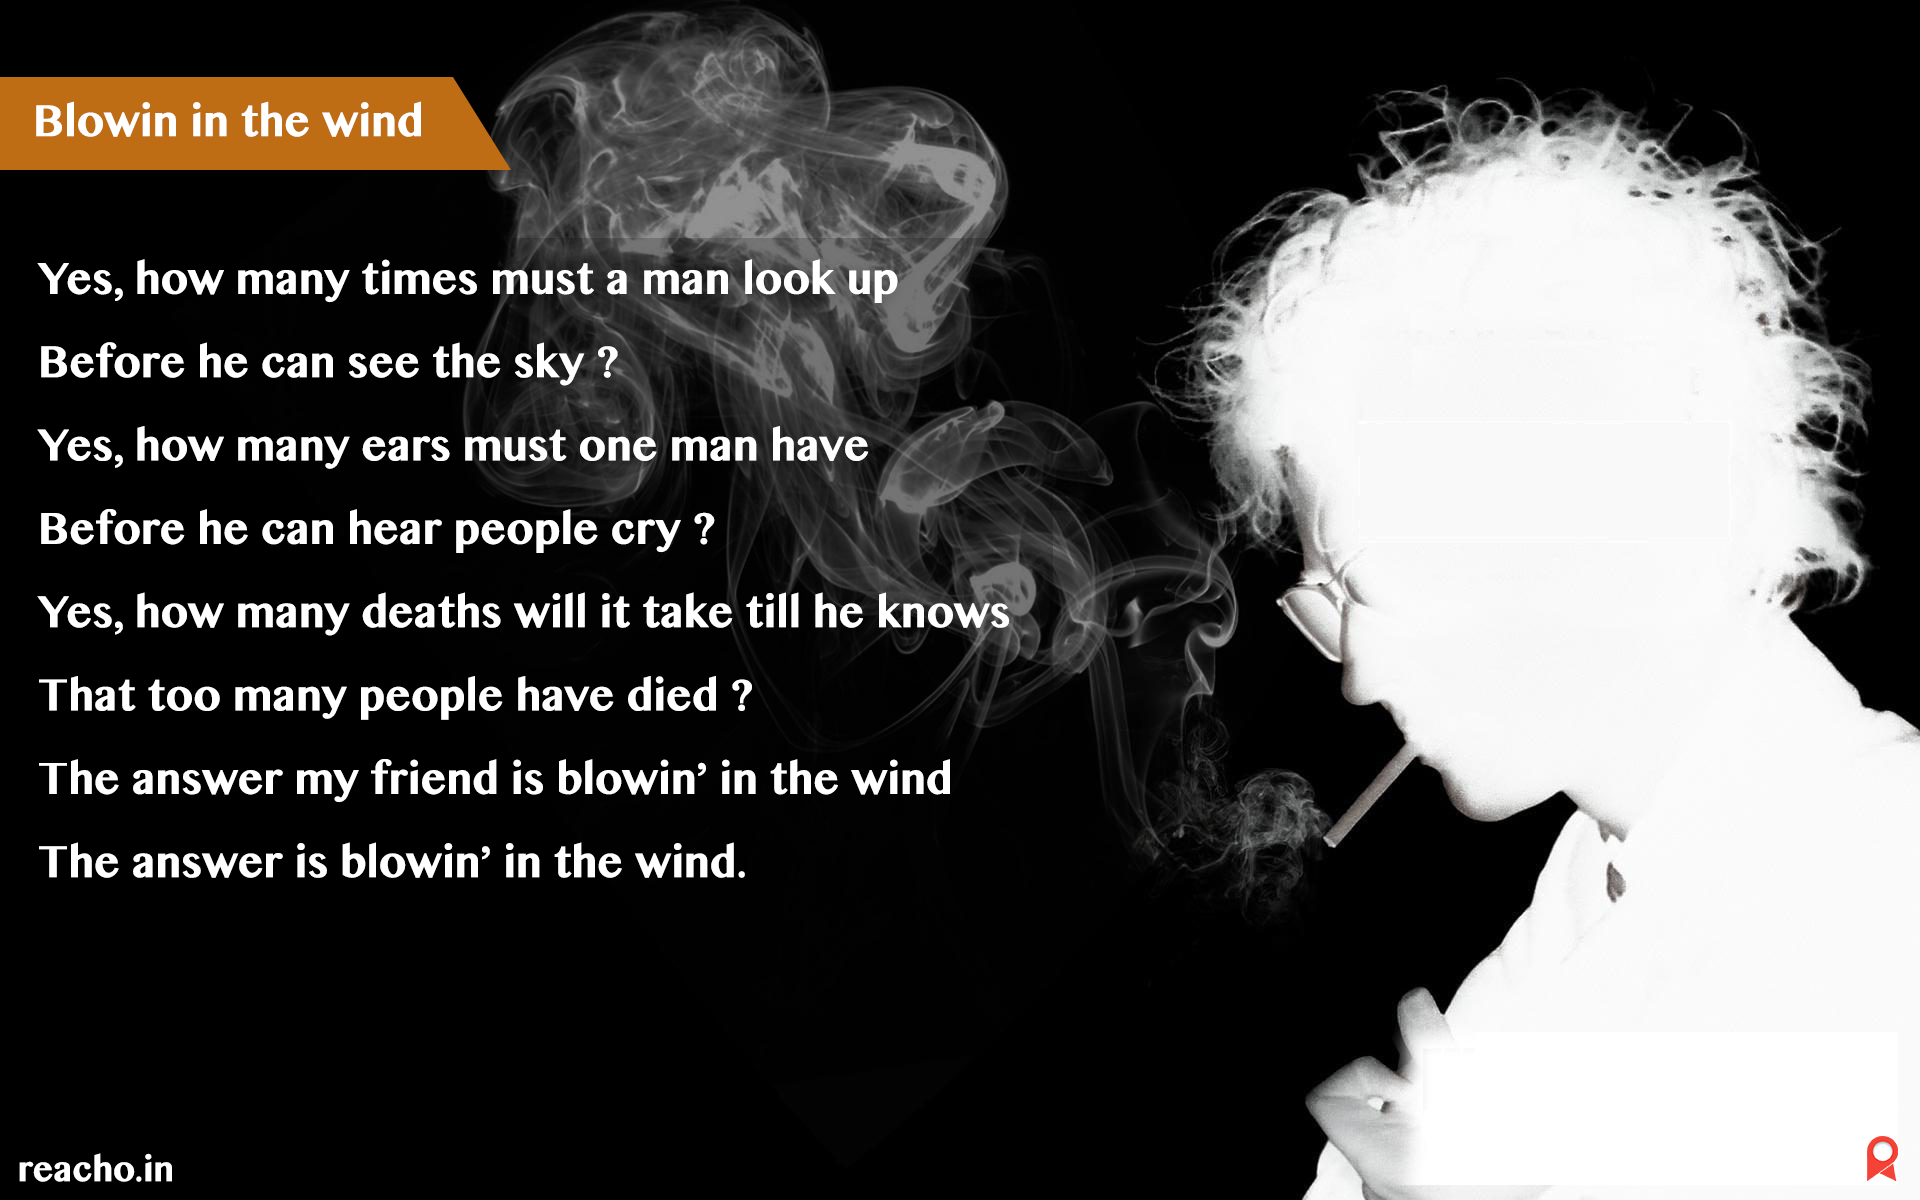 Bob Dylan, Nobel Prize for Literature, Nobel Prize, singer-songwriter, Lyricist, Bob Dylan Lyrics